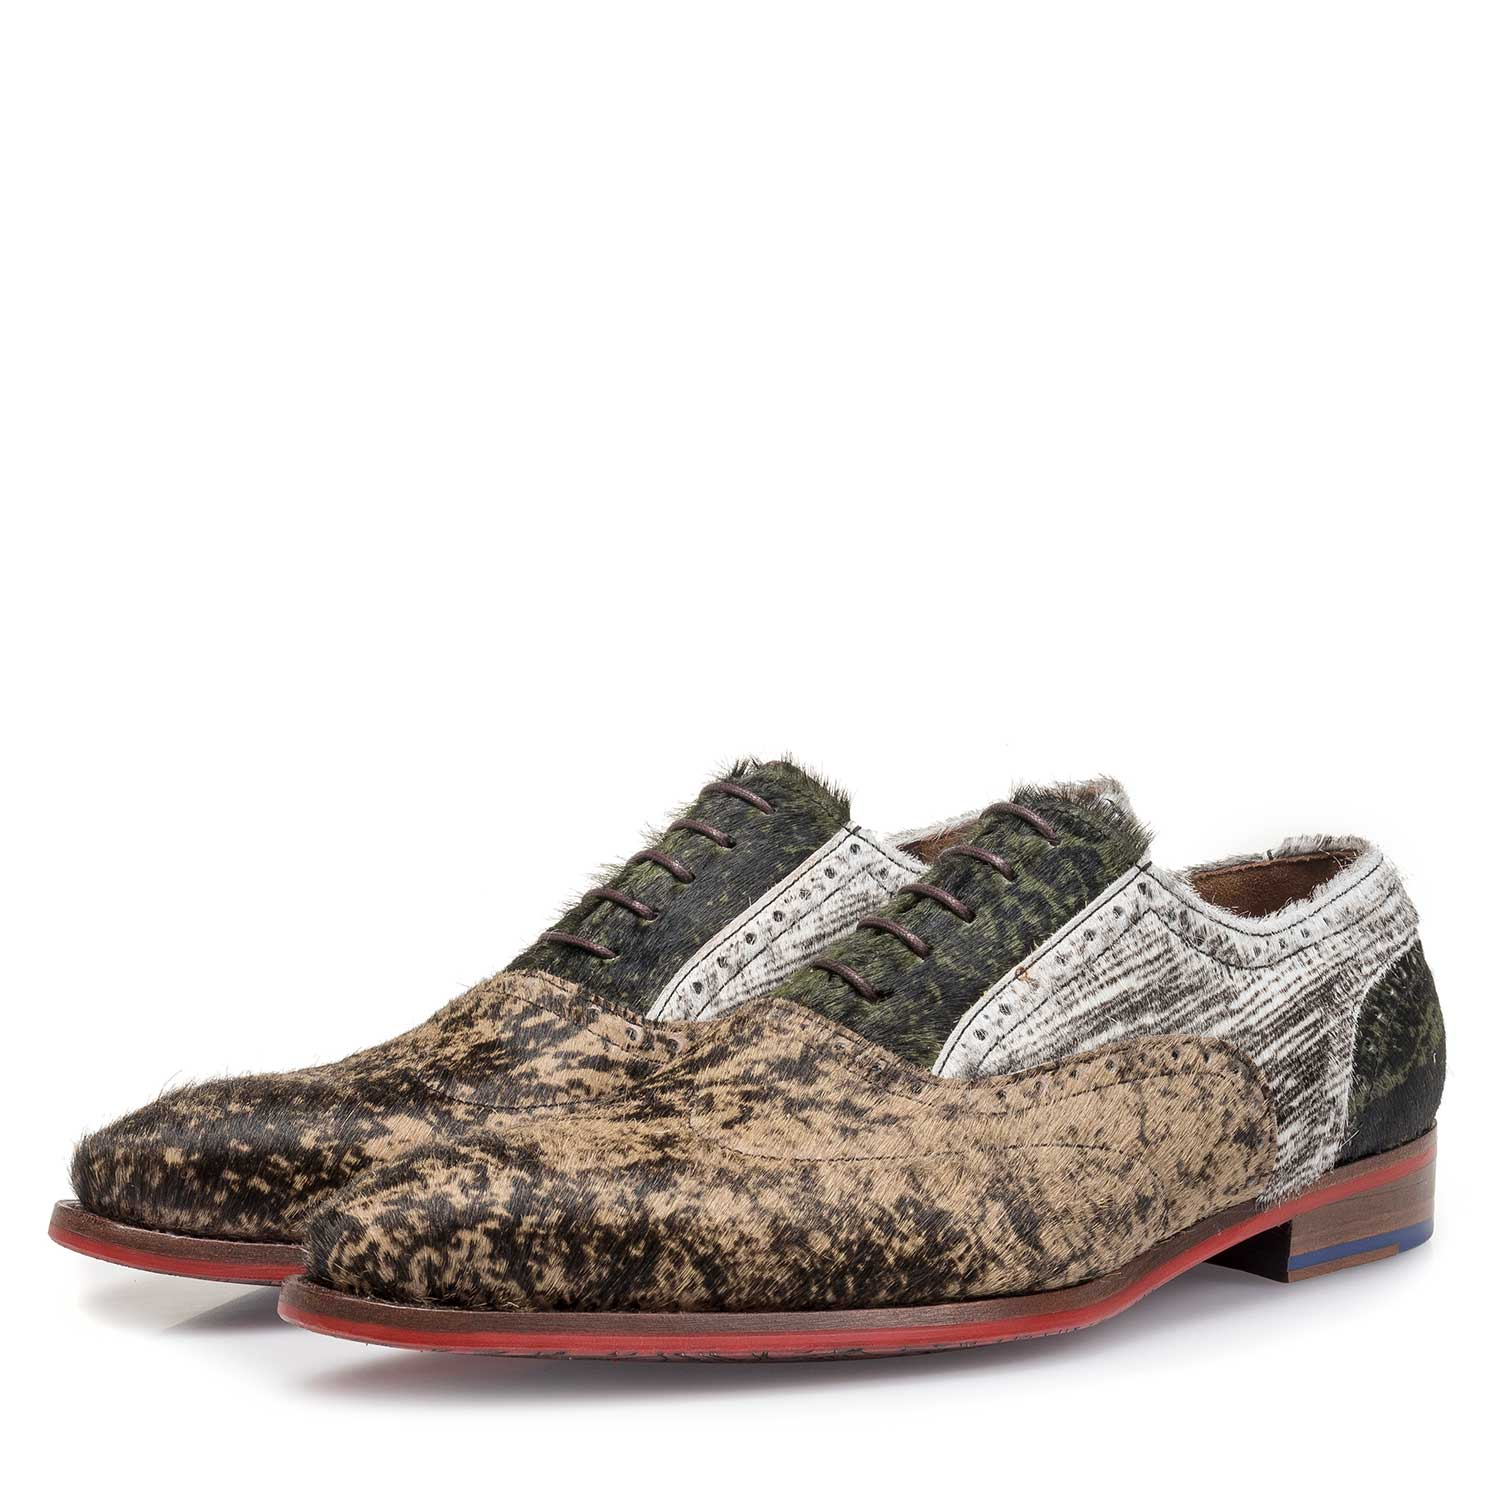 19124/00 - Brown premium lace shoe with print